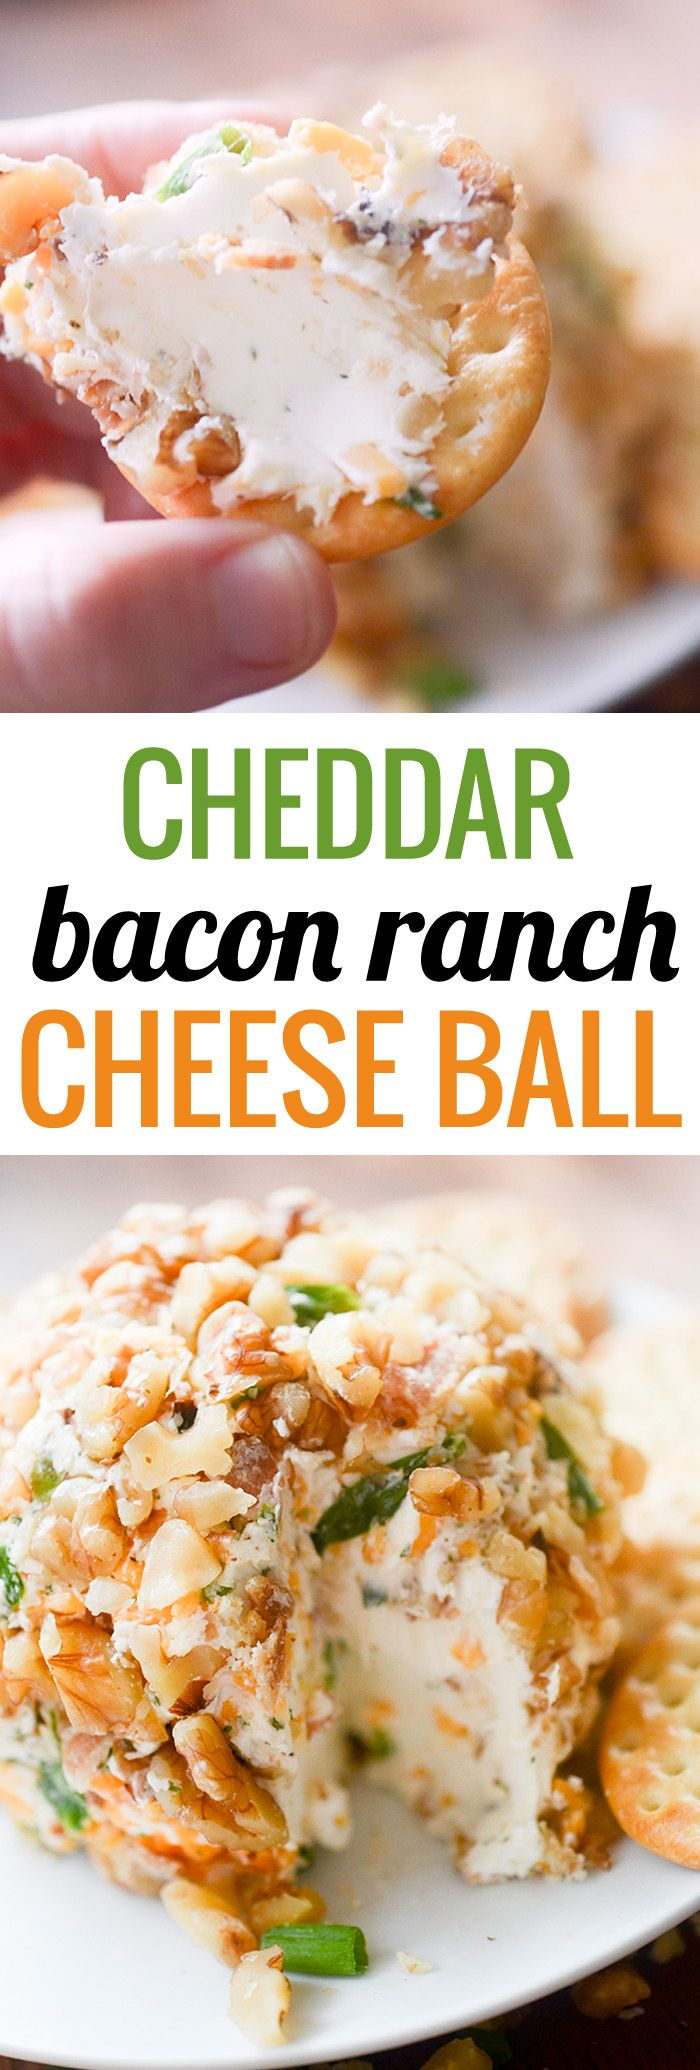 Cheddar Bacon Ranch Cheese Ball - Recipe Diaries